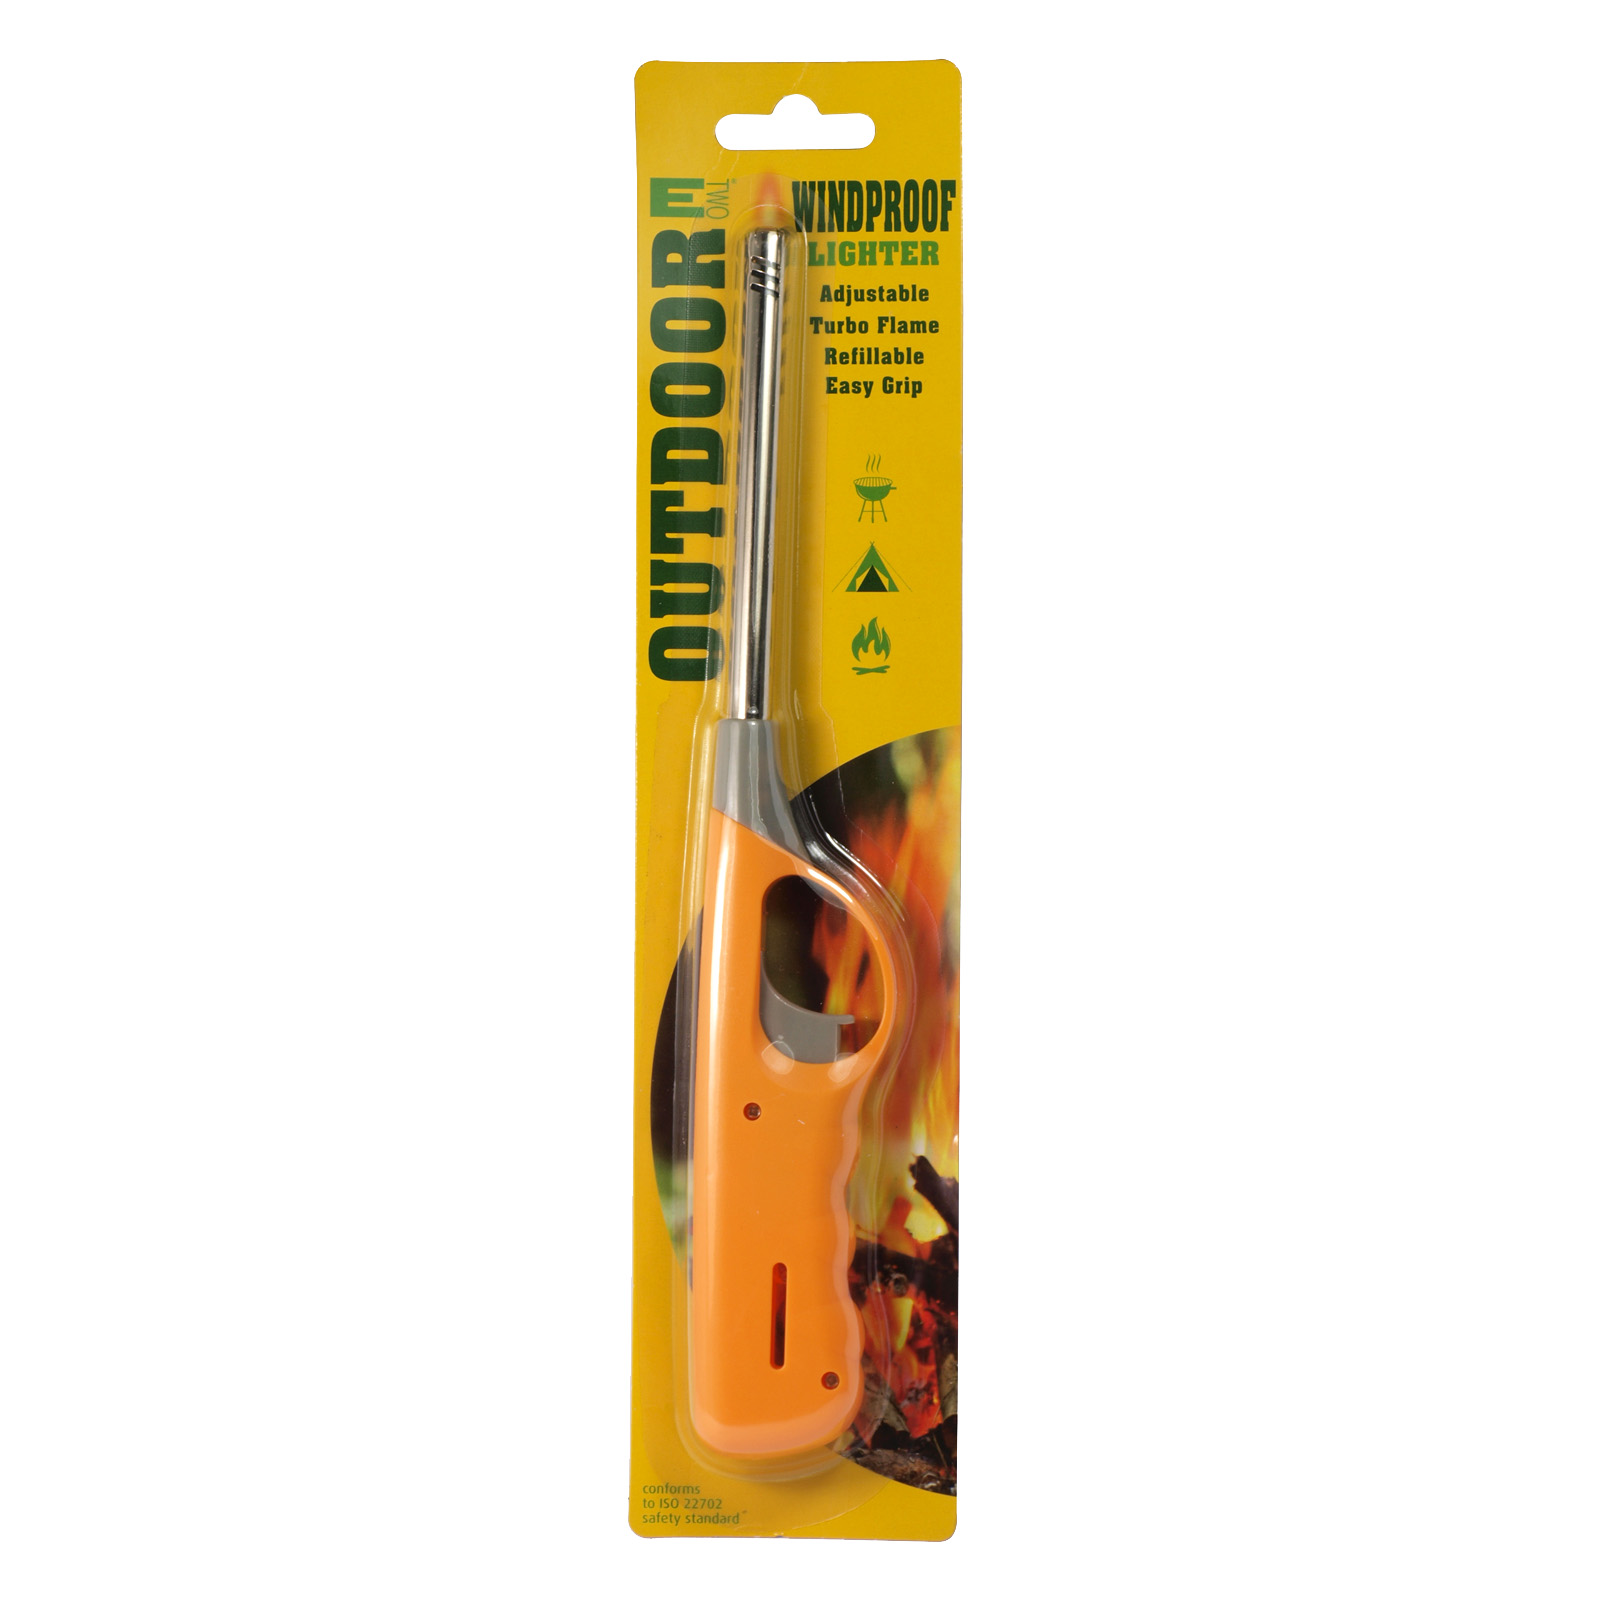 WINDPROOF UTILITY LIGHTER TURBO FLAME SINGLE